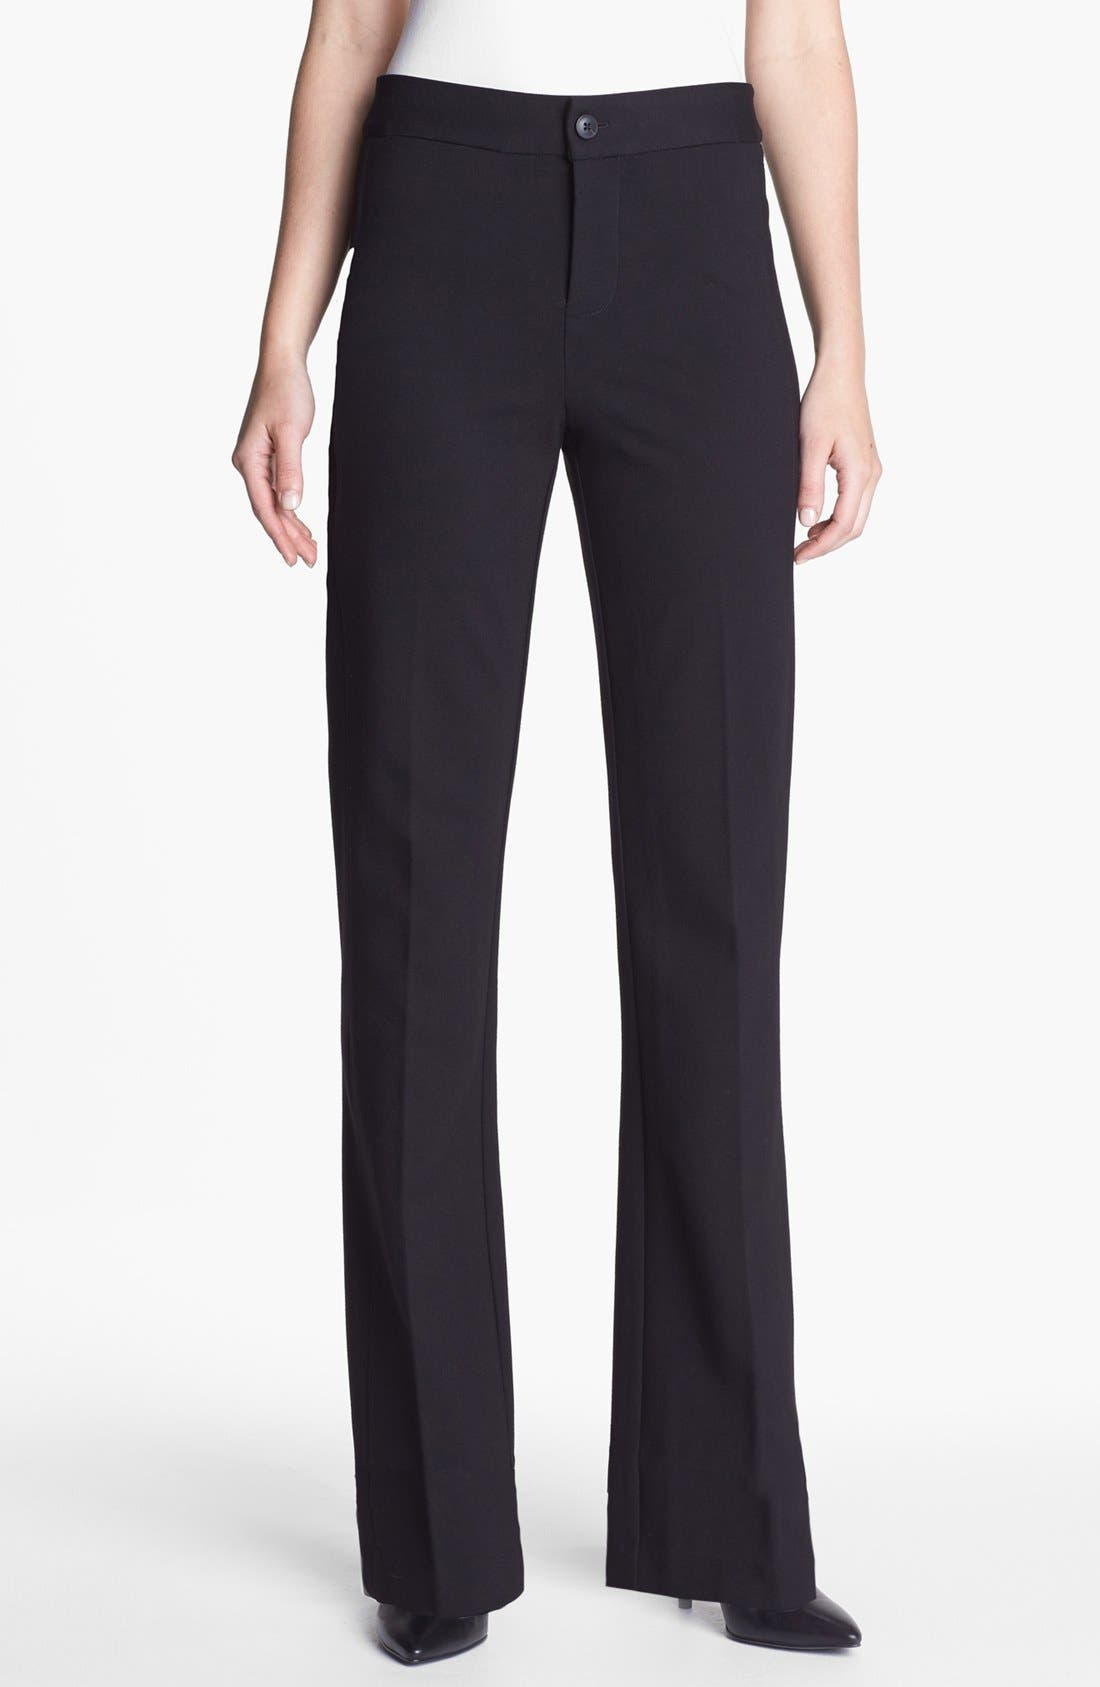 Alternate Image 1 Selected - NYDJ Stretch Ponte Trousers (Regular & Petite)